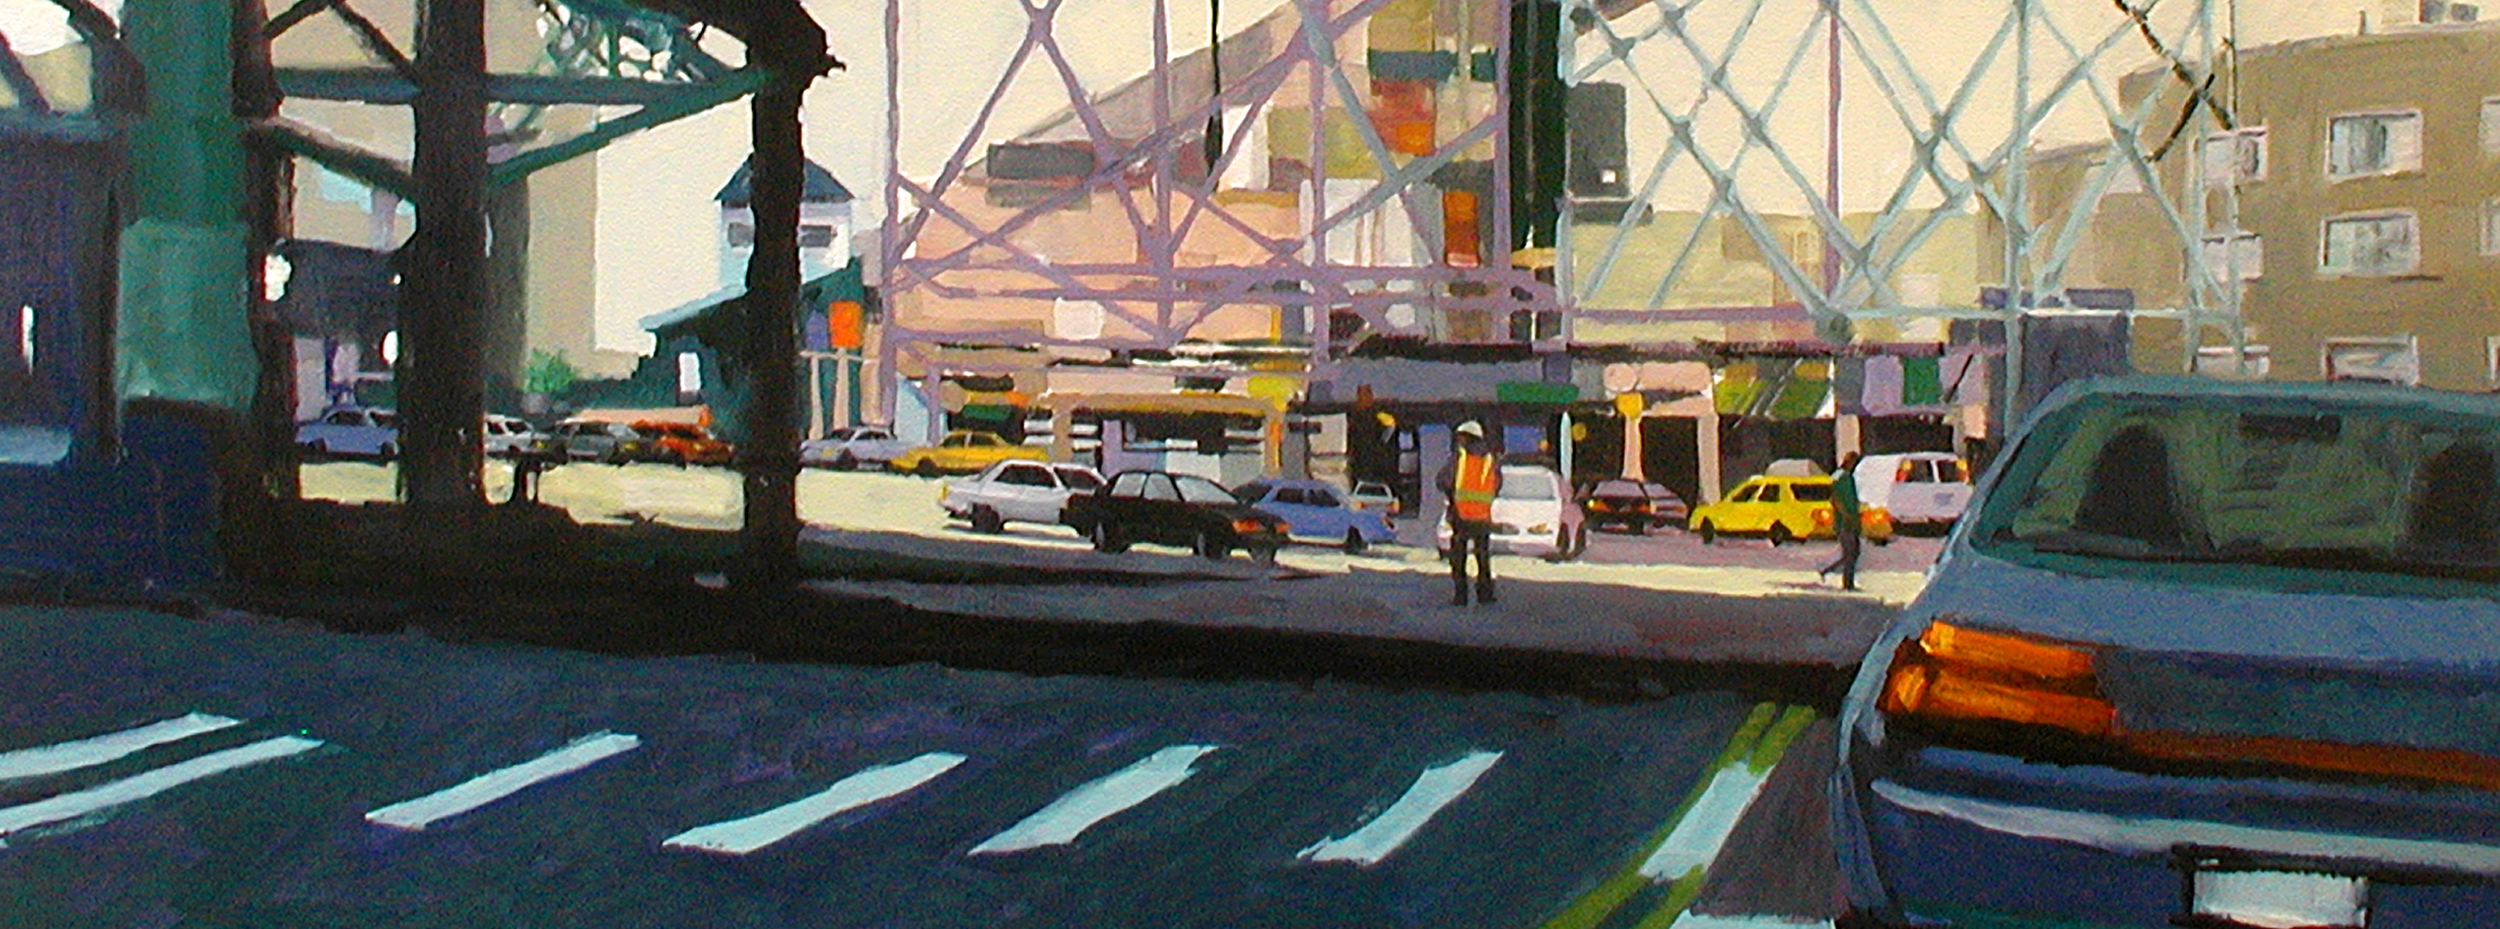 To the Triboro painting cropped.jpg